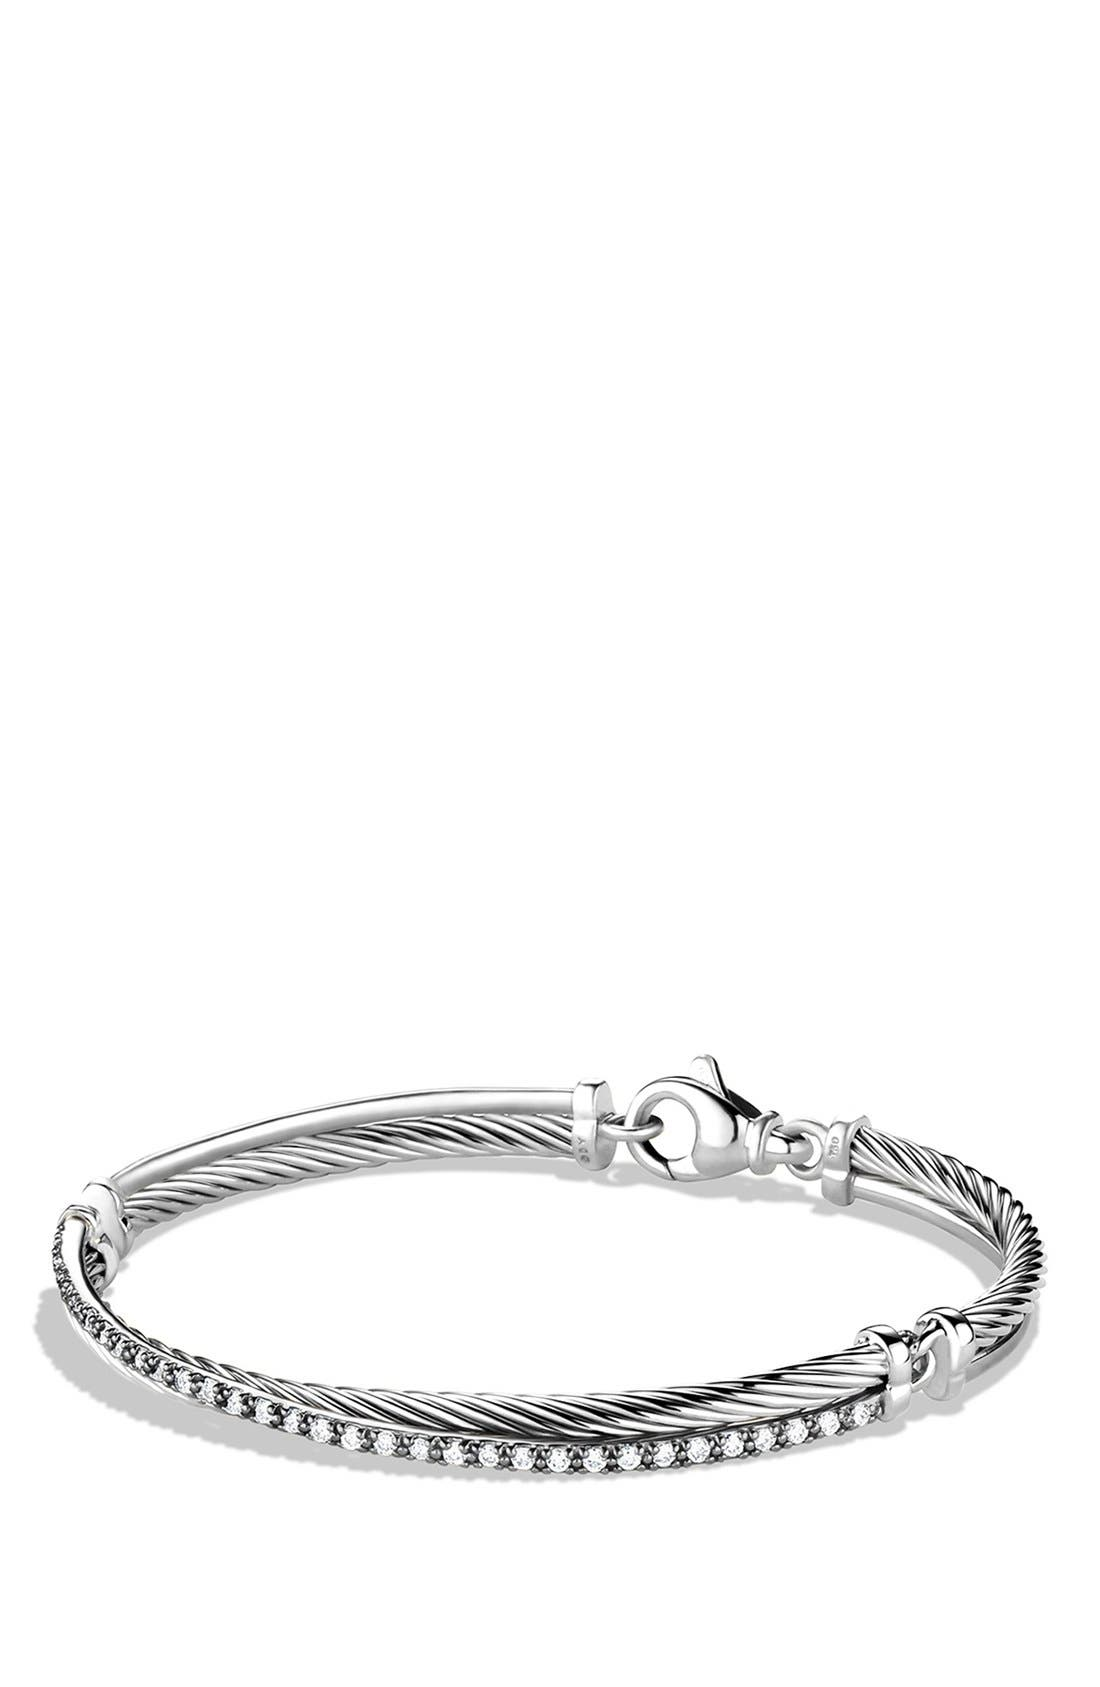 Alternate Image 1 Selected - David Yurman 'Crossover' Bracelet with Diamonds